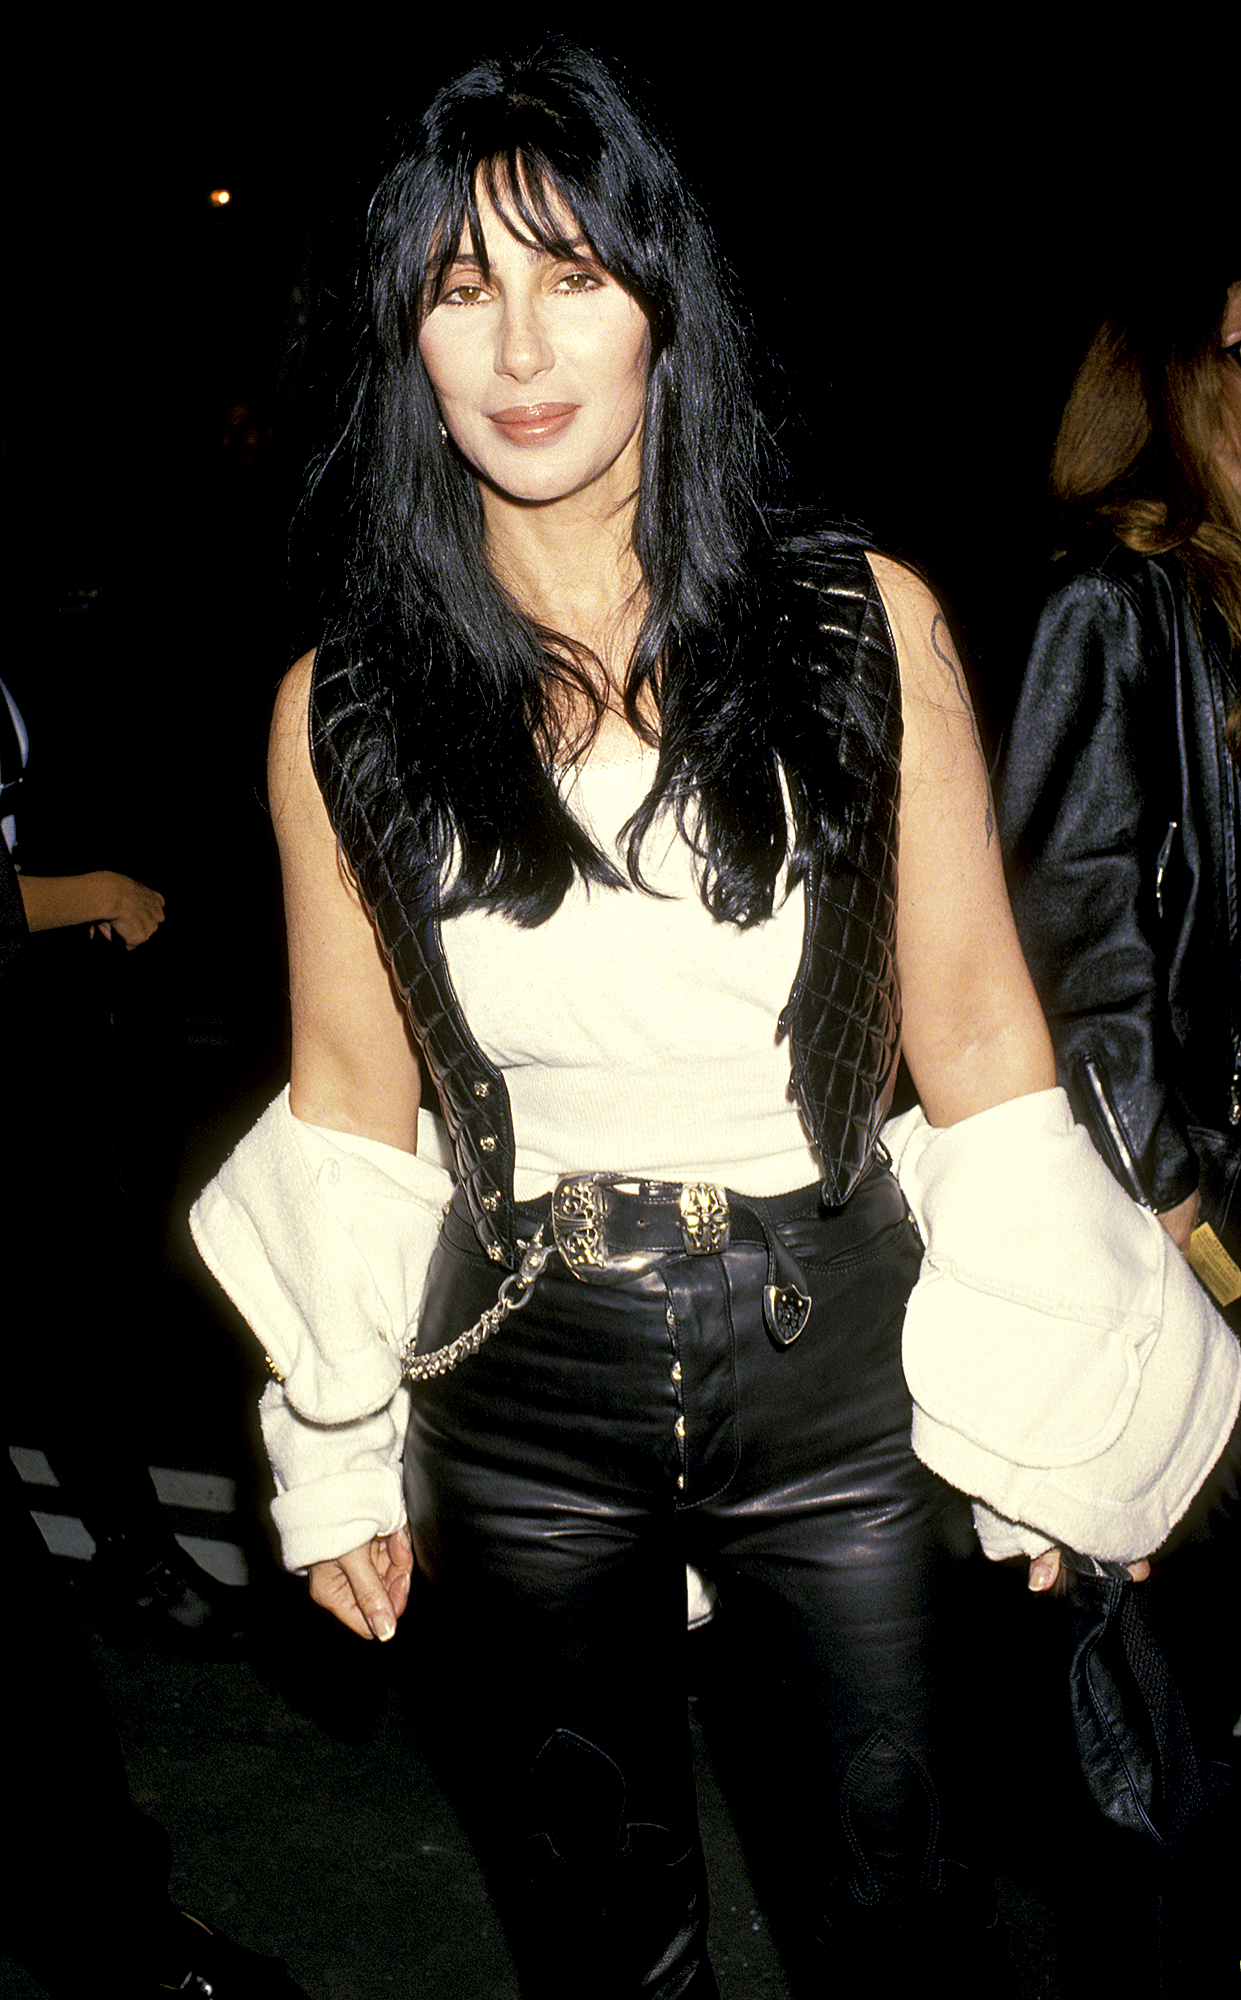 1994-cher - At the D.A.R.E. Benefit, Cher looked cool in black leather pants and a matching vest with a white tee and jacket.